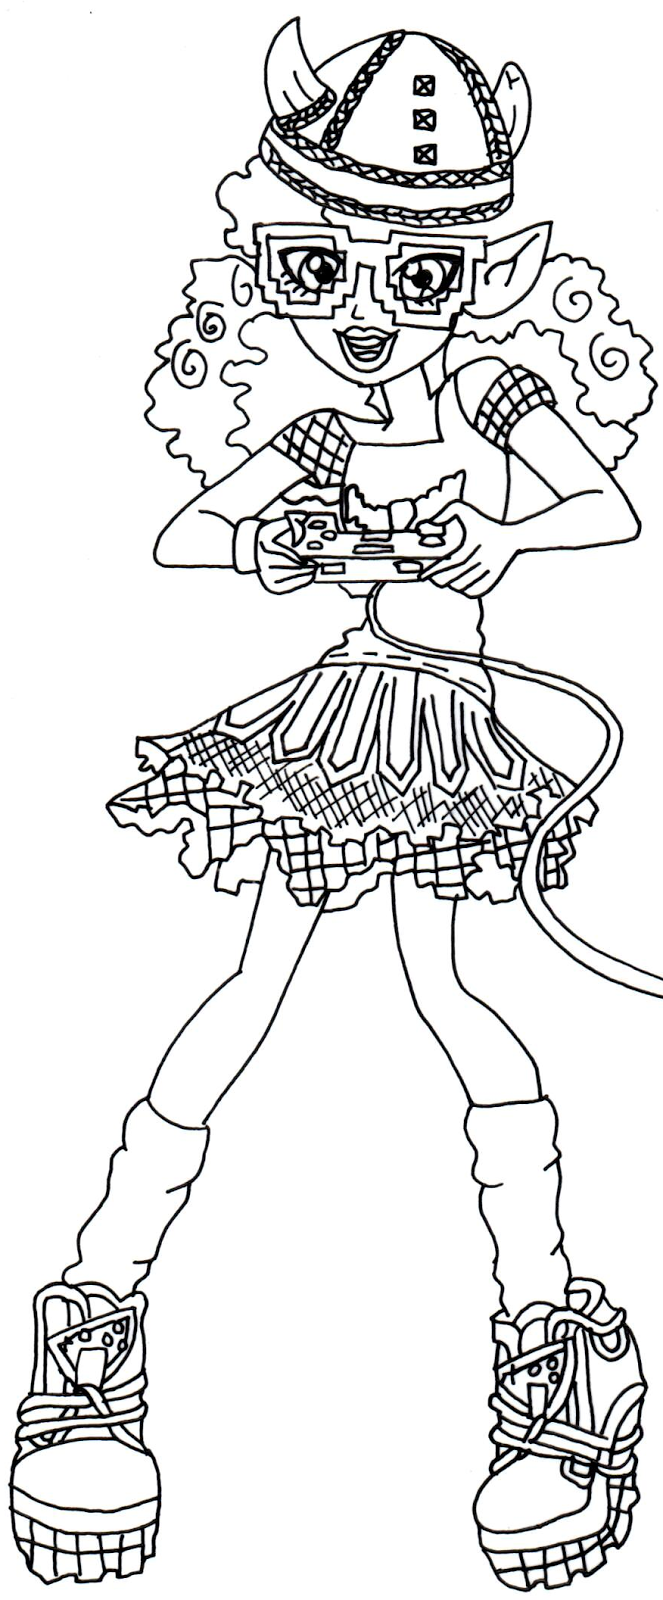 Free Printable Monster High Coloring Pages Kjersti Trollson Monster